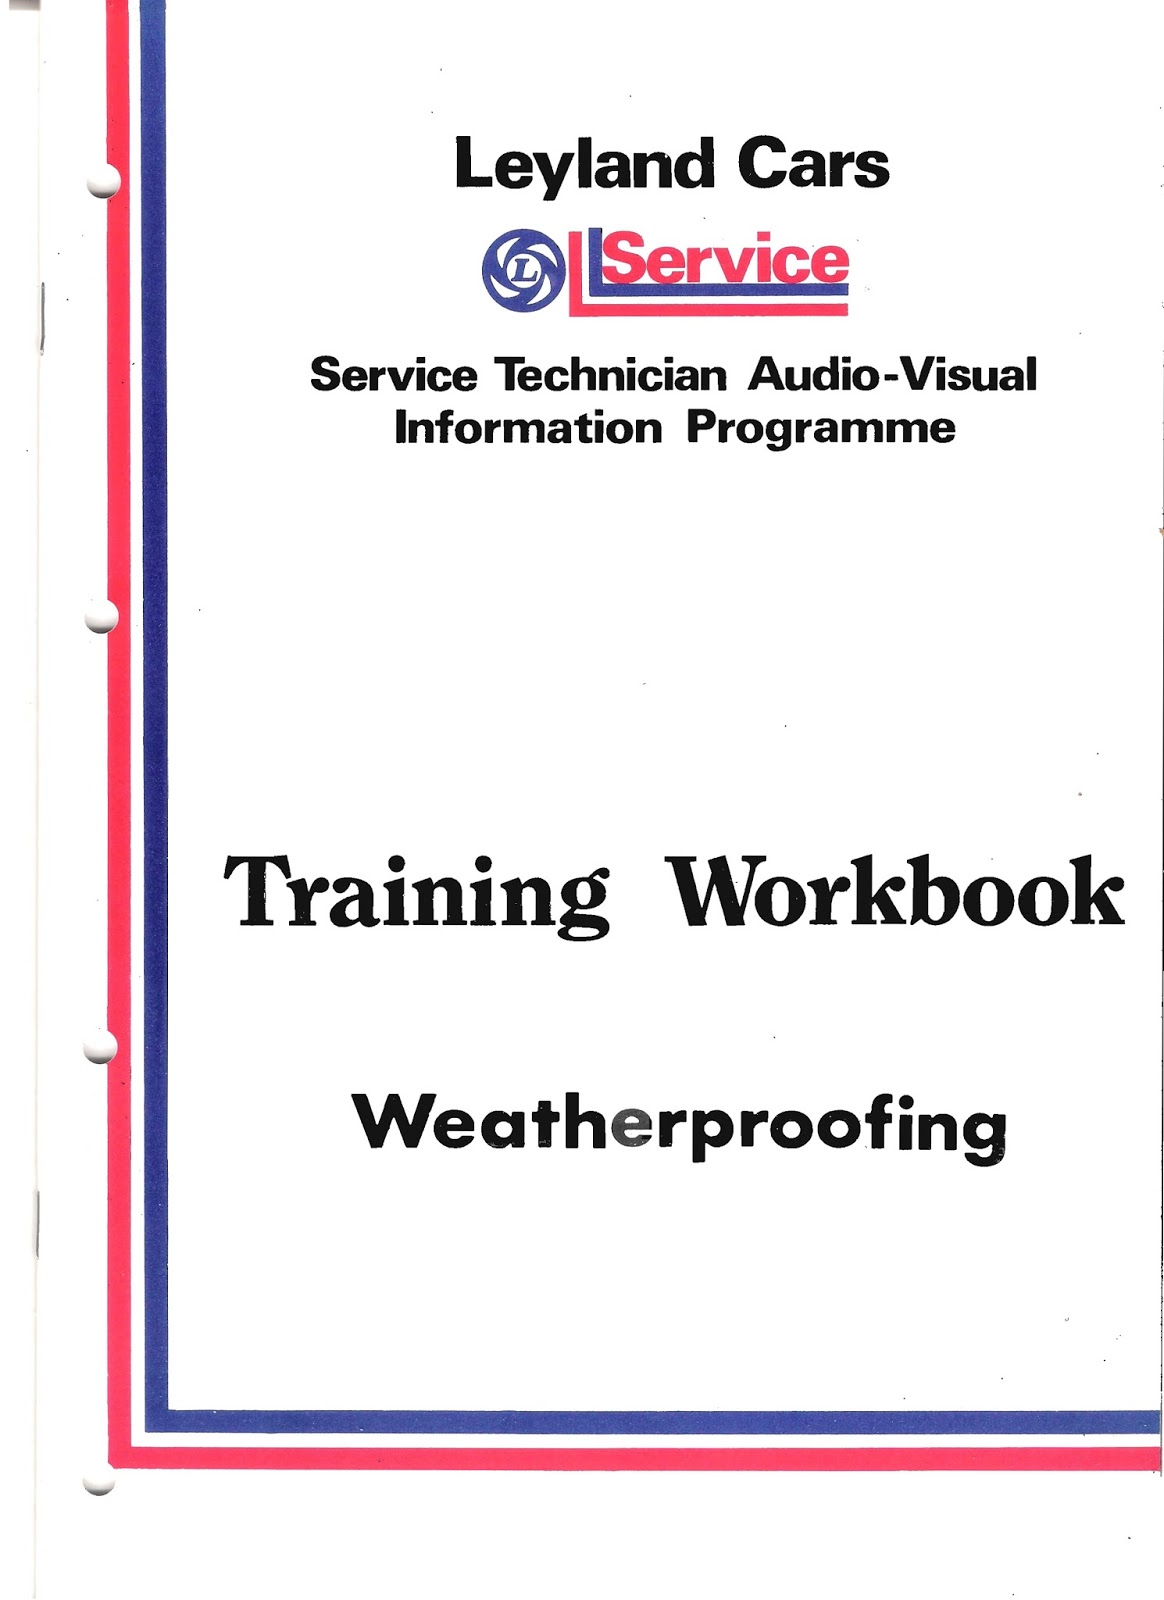 Leyland Cars Training Workbook - Weatherproofing - cover